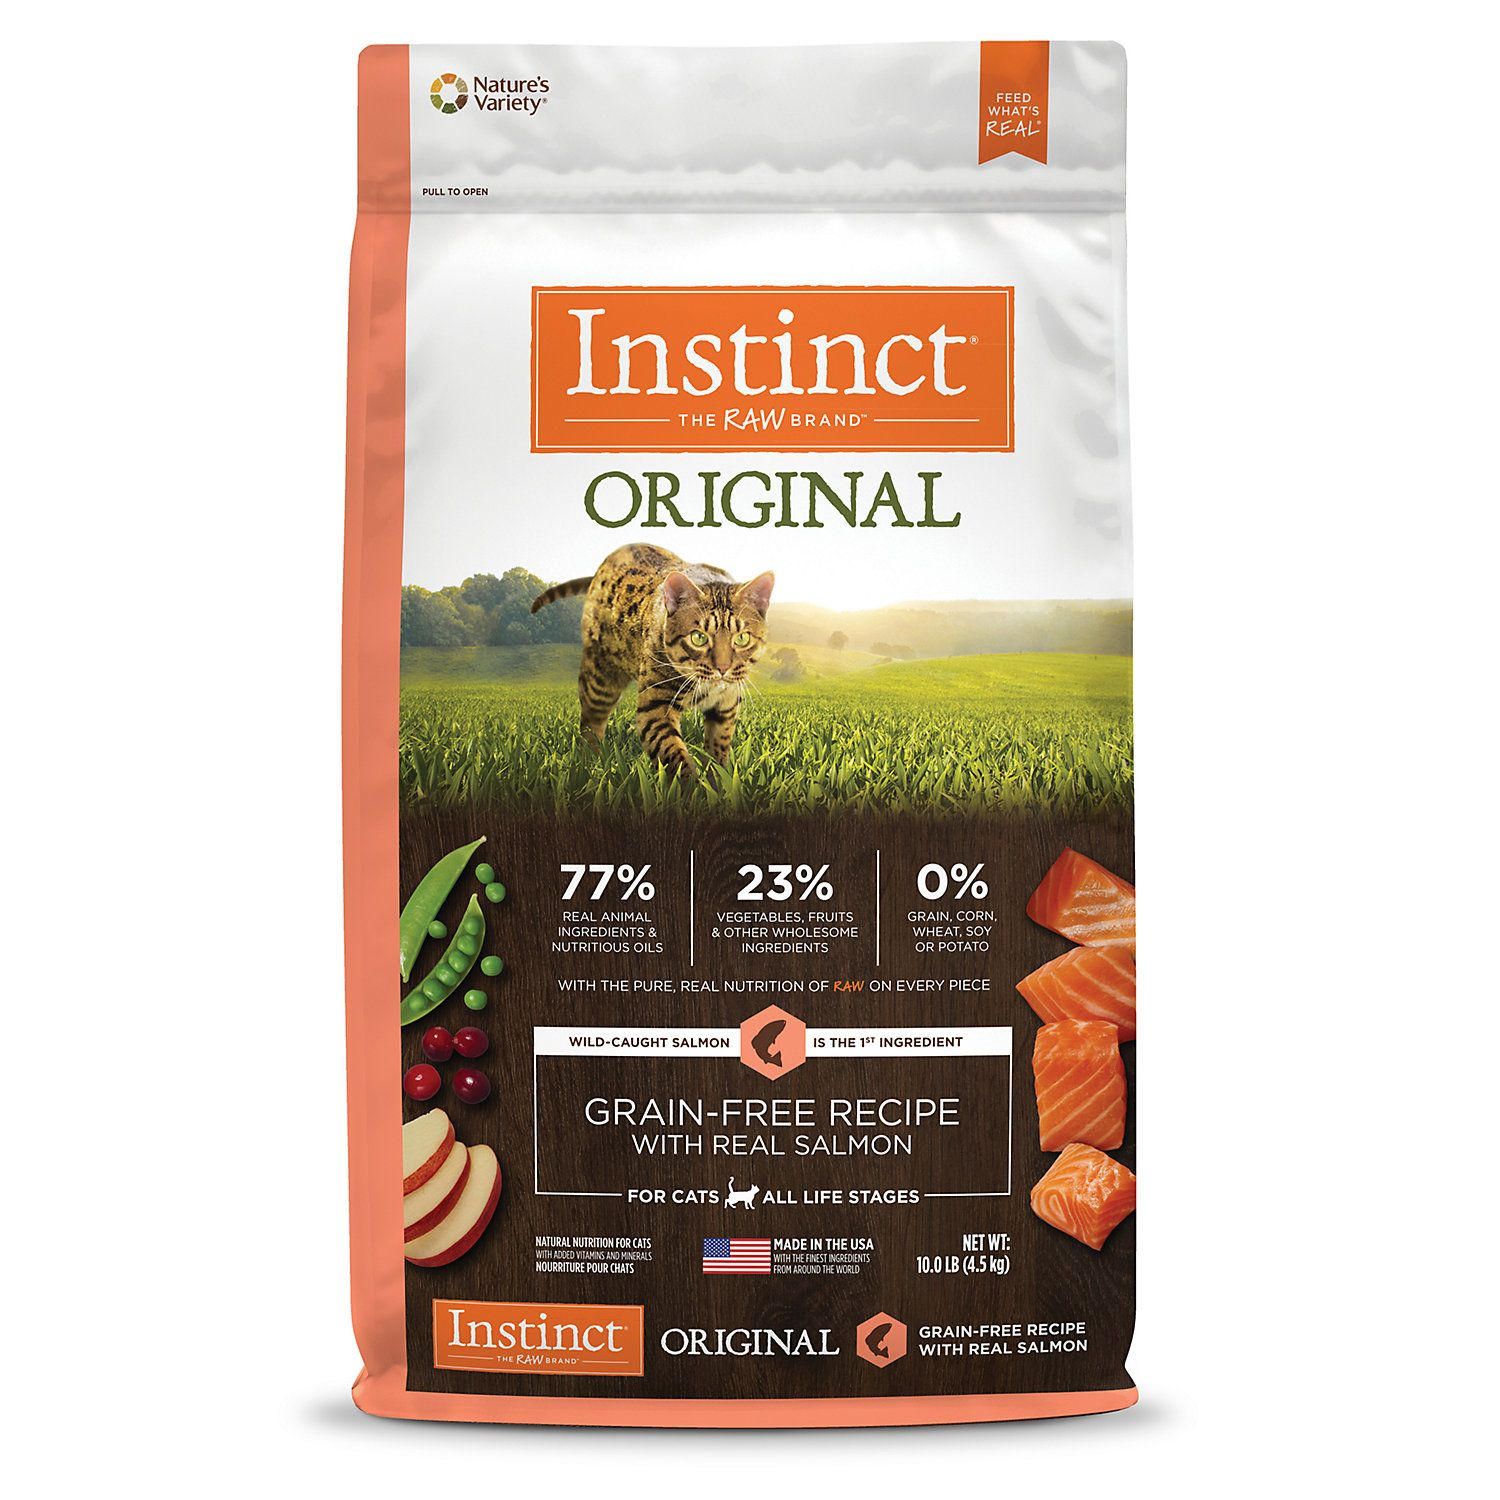 Instinct Original Grain Free Recipe with Real Salmon